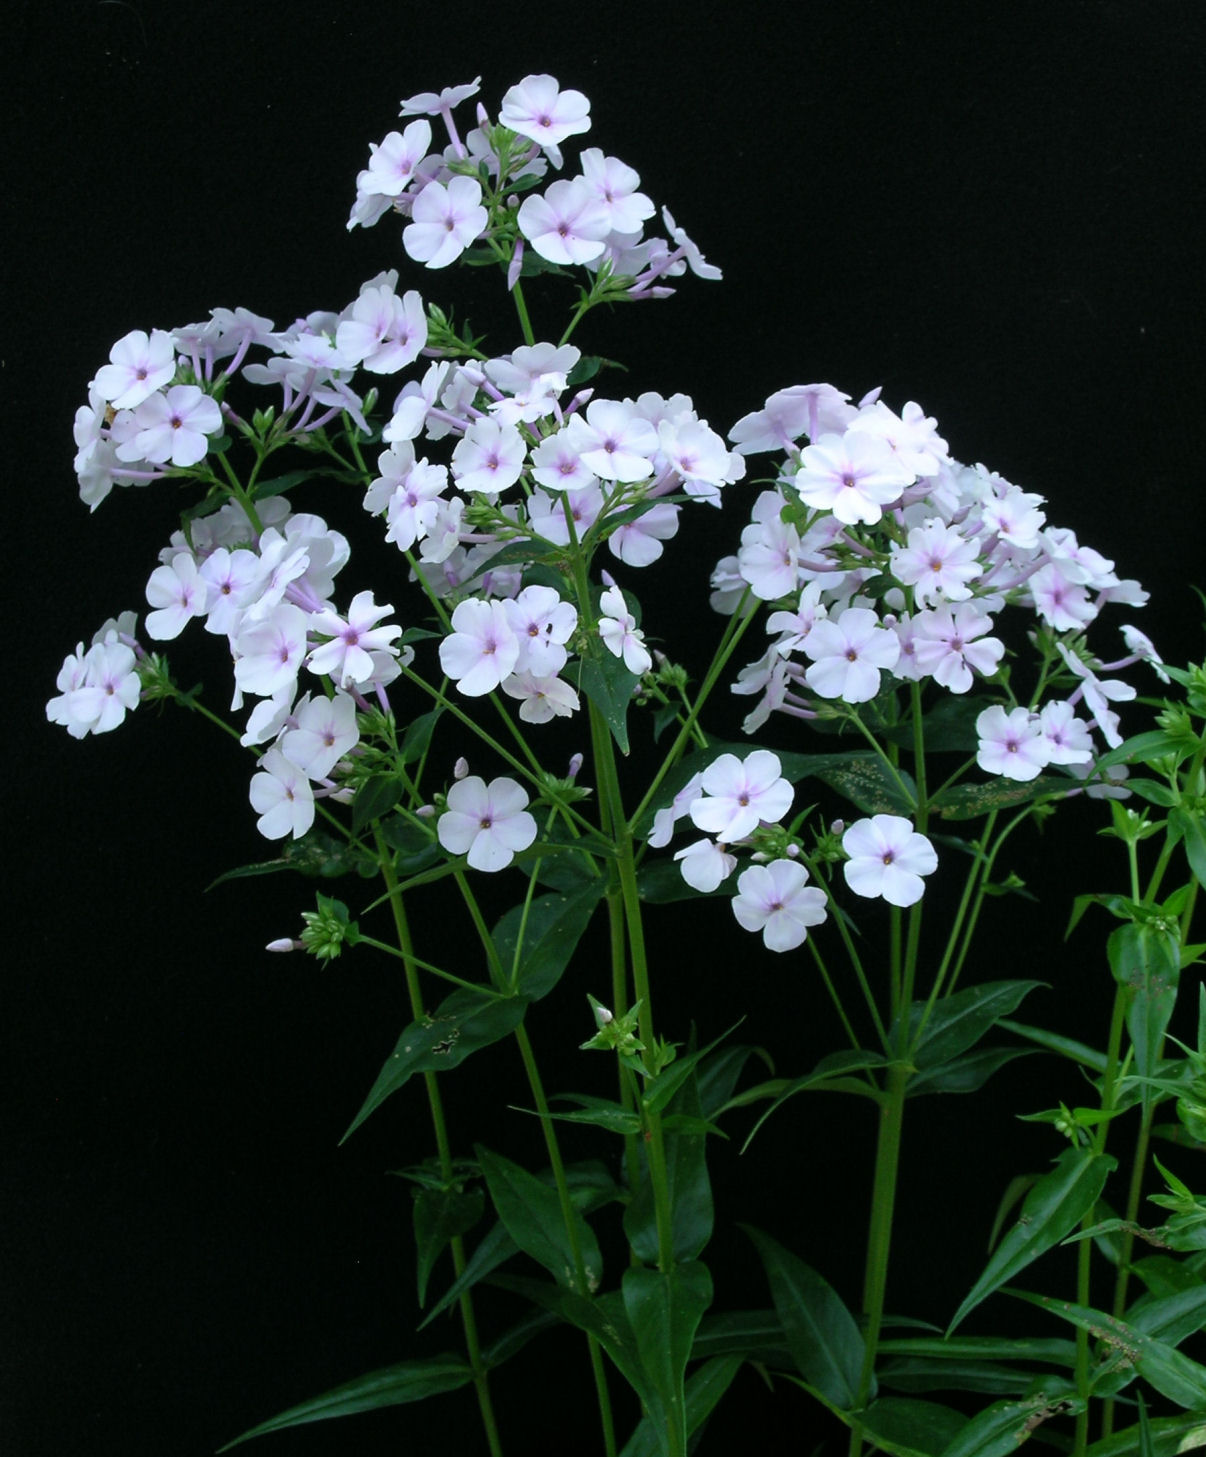 phlox single girls Check out more information about phlox care and explore tips on growing meredith women's billowy panicles of tiny single or double pink or white.